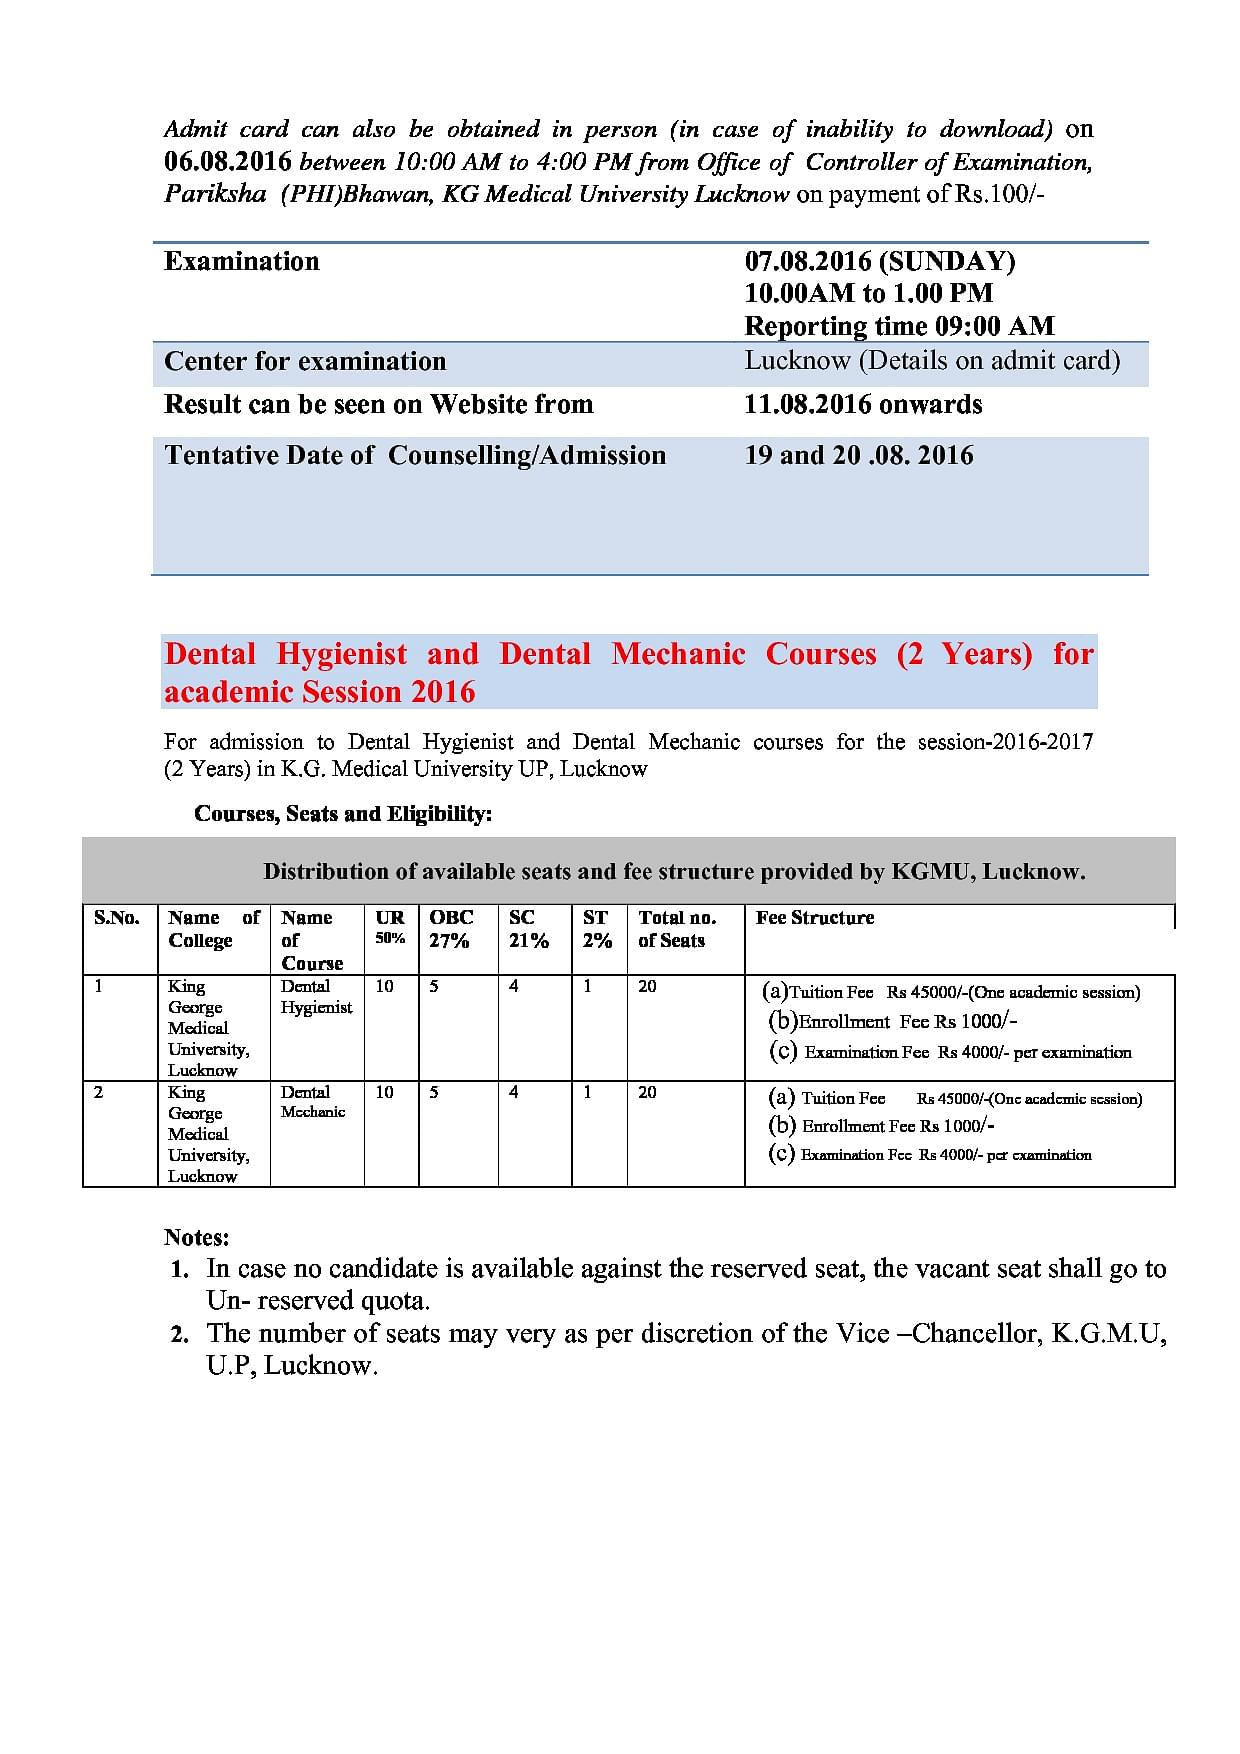 King George's Medical College (KGMU), Lucknow - Admissions, Courses